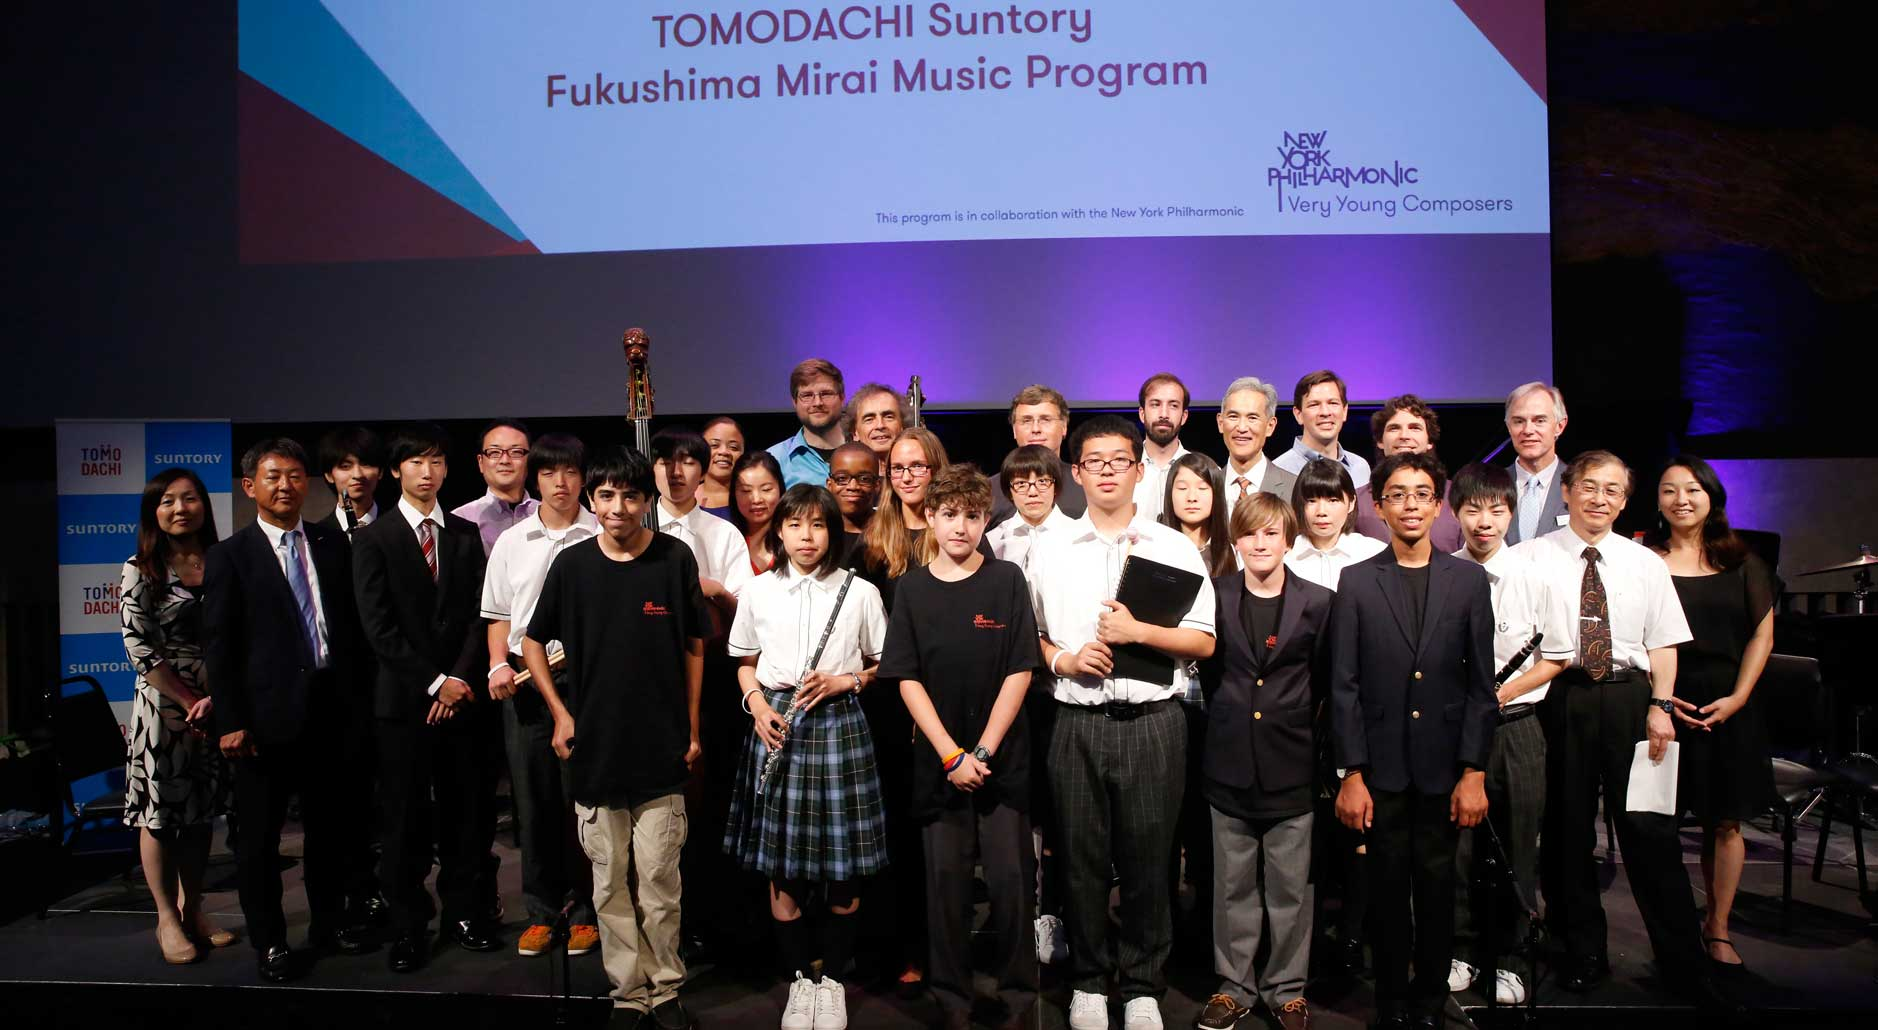 Free Concert Showcases World Premieres by Very Young Composers of